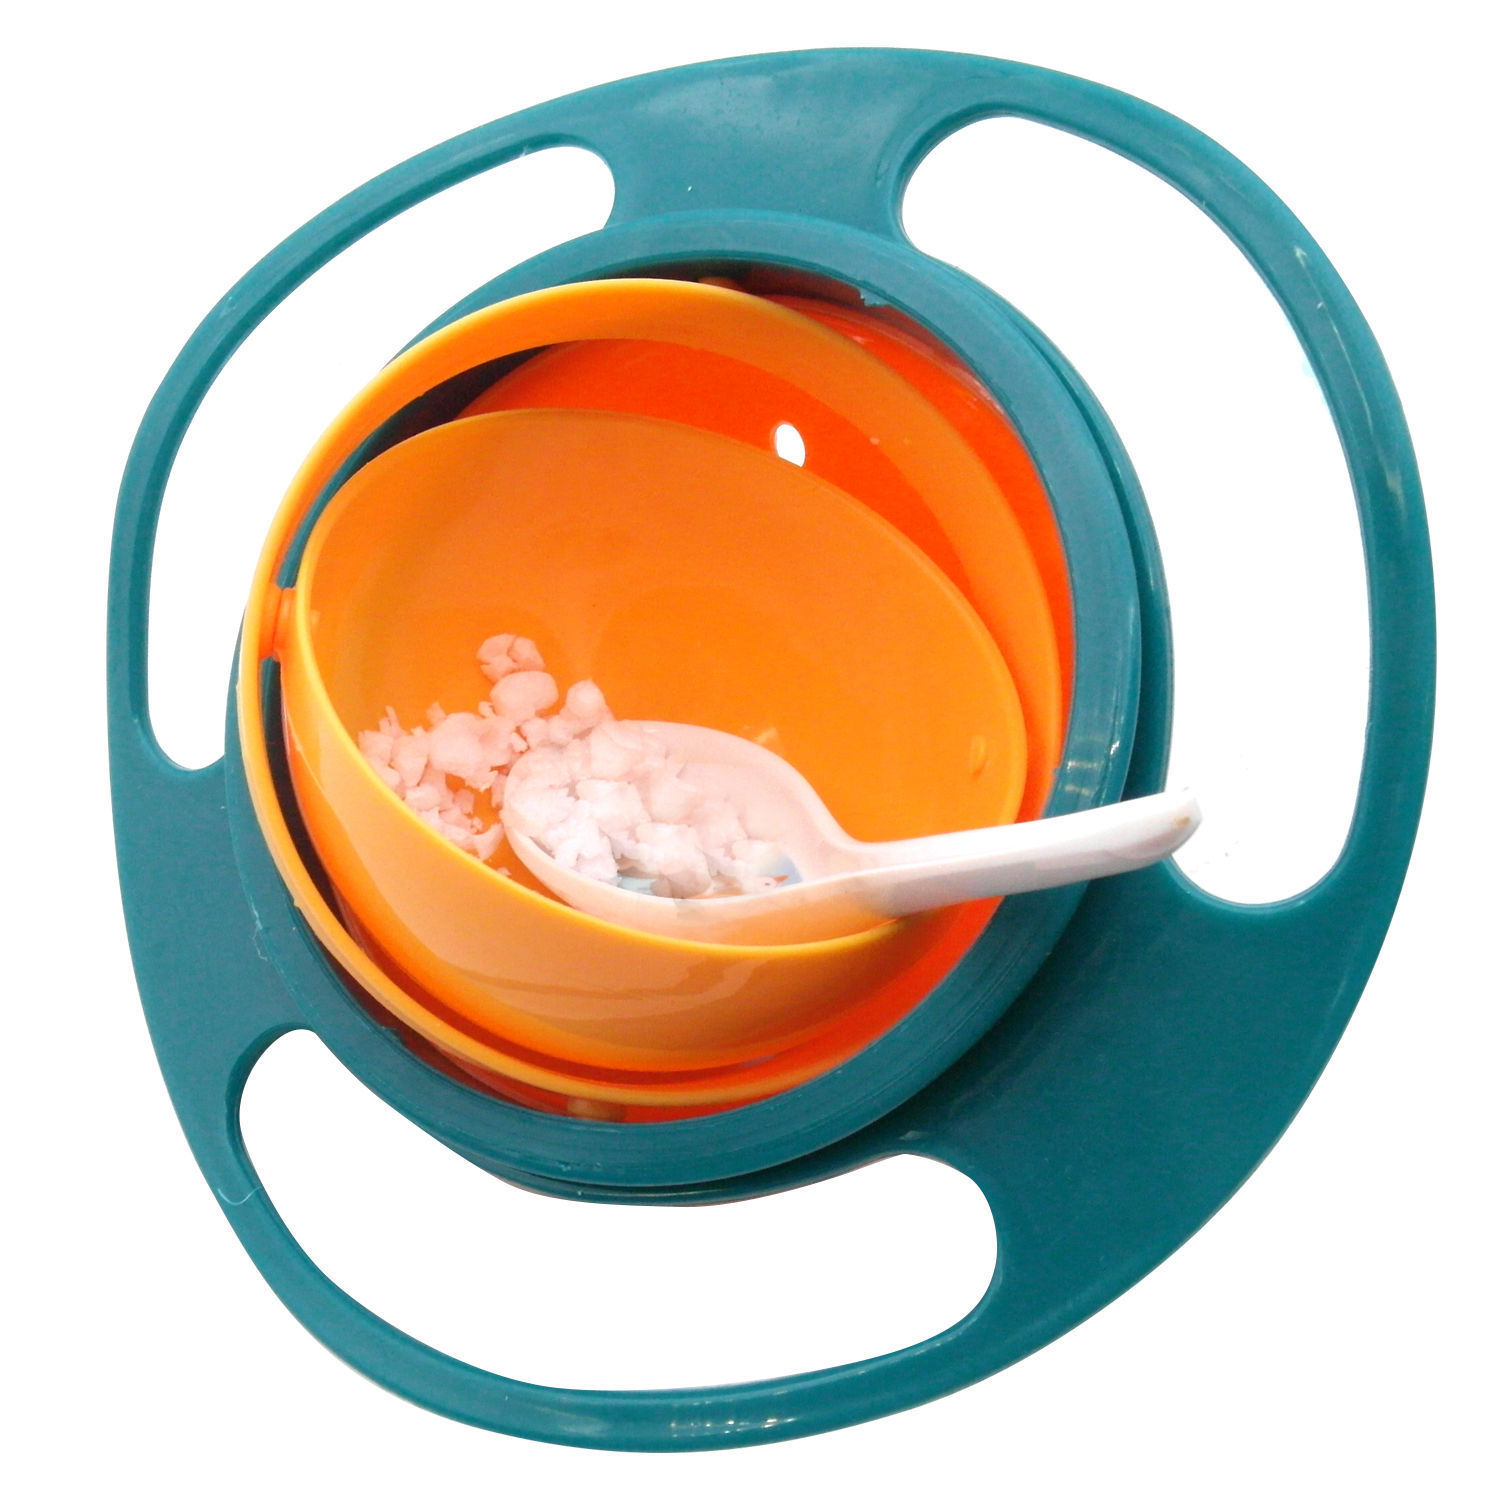 Gyro Bowl is also a special, educational toy for kids which is smartly designed to stimulate the baby to discover and enjoy eating in the bowl.